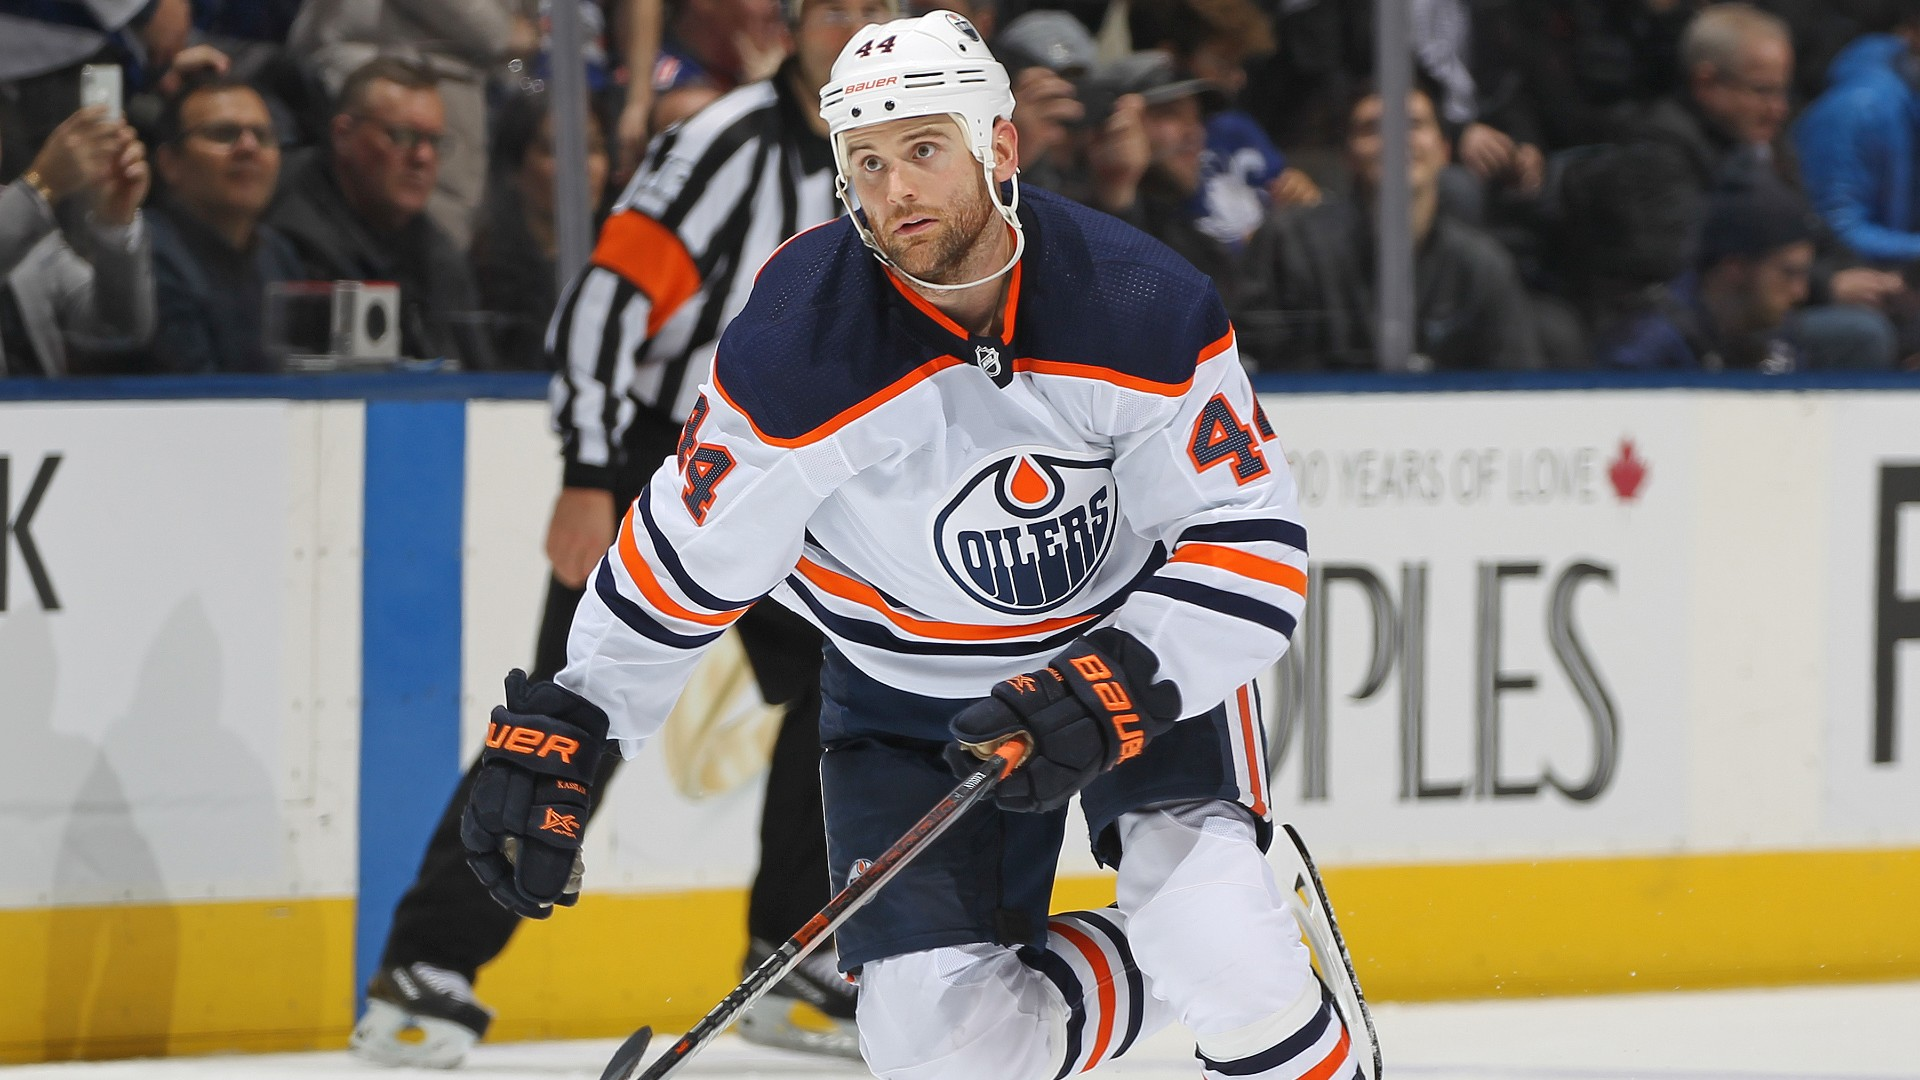 Oilers' Zack Kassian receives seven-game suspension after kicking opponent with skate